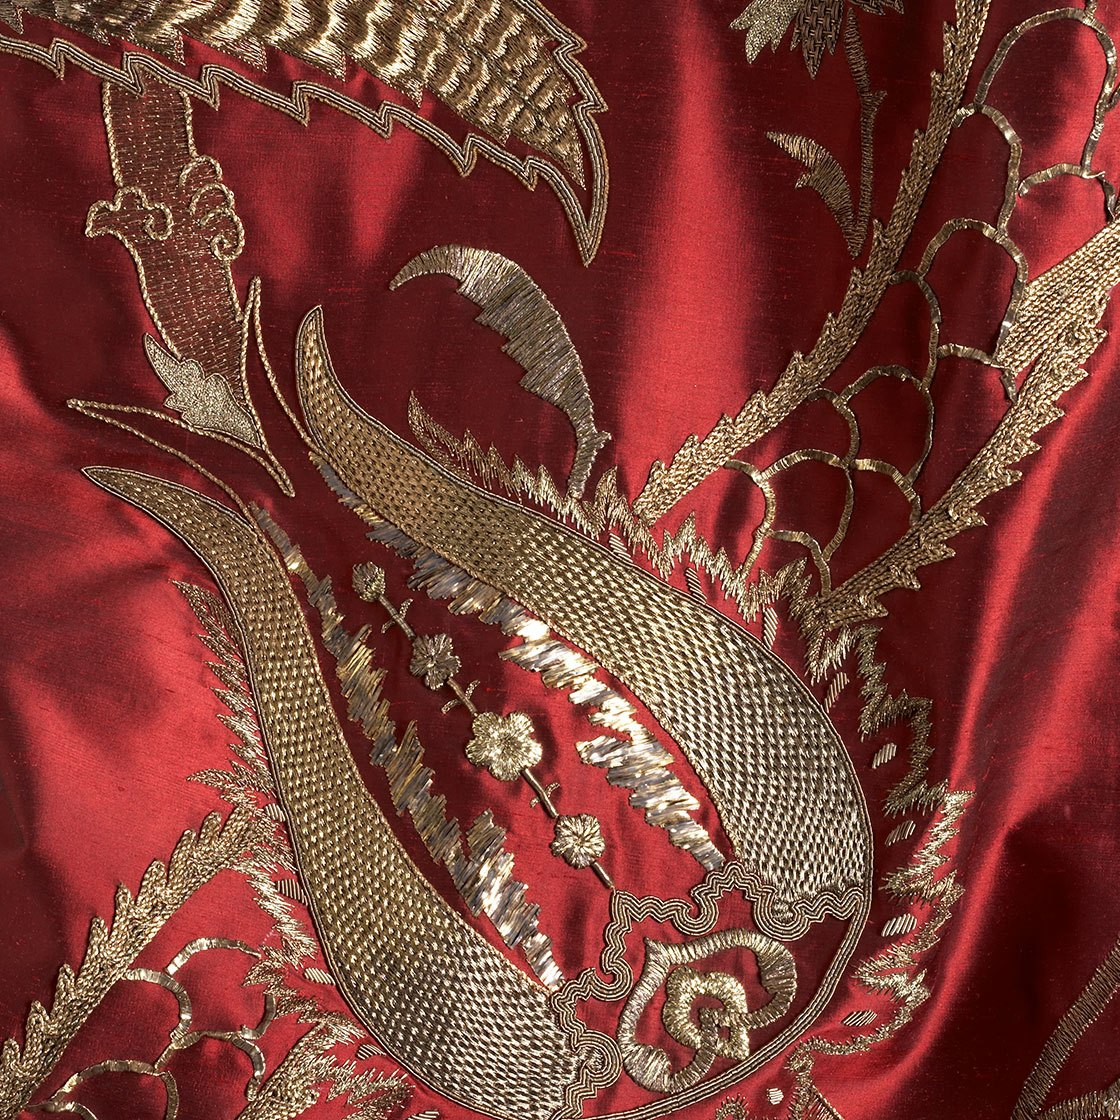 Salome on Boyne silk - Red - Beaumont & Fletcher - Beaumont & Fletcher